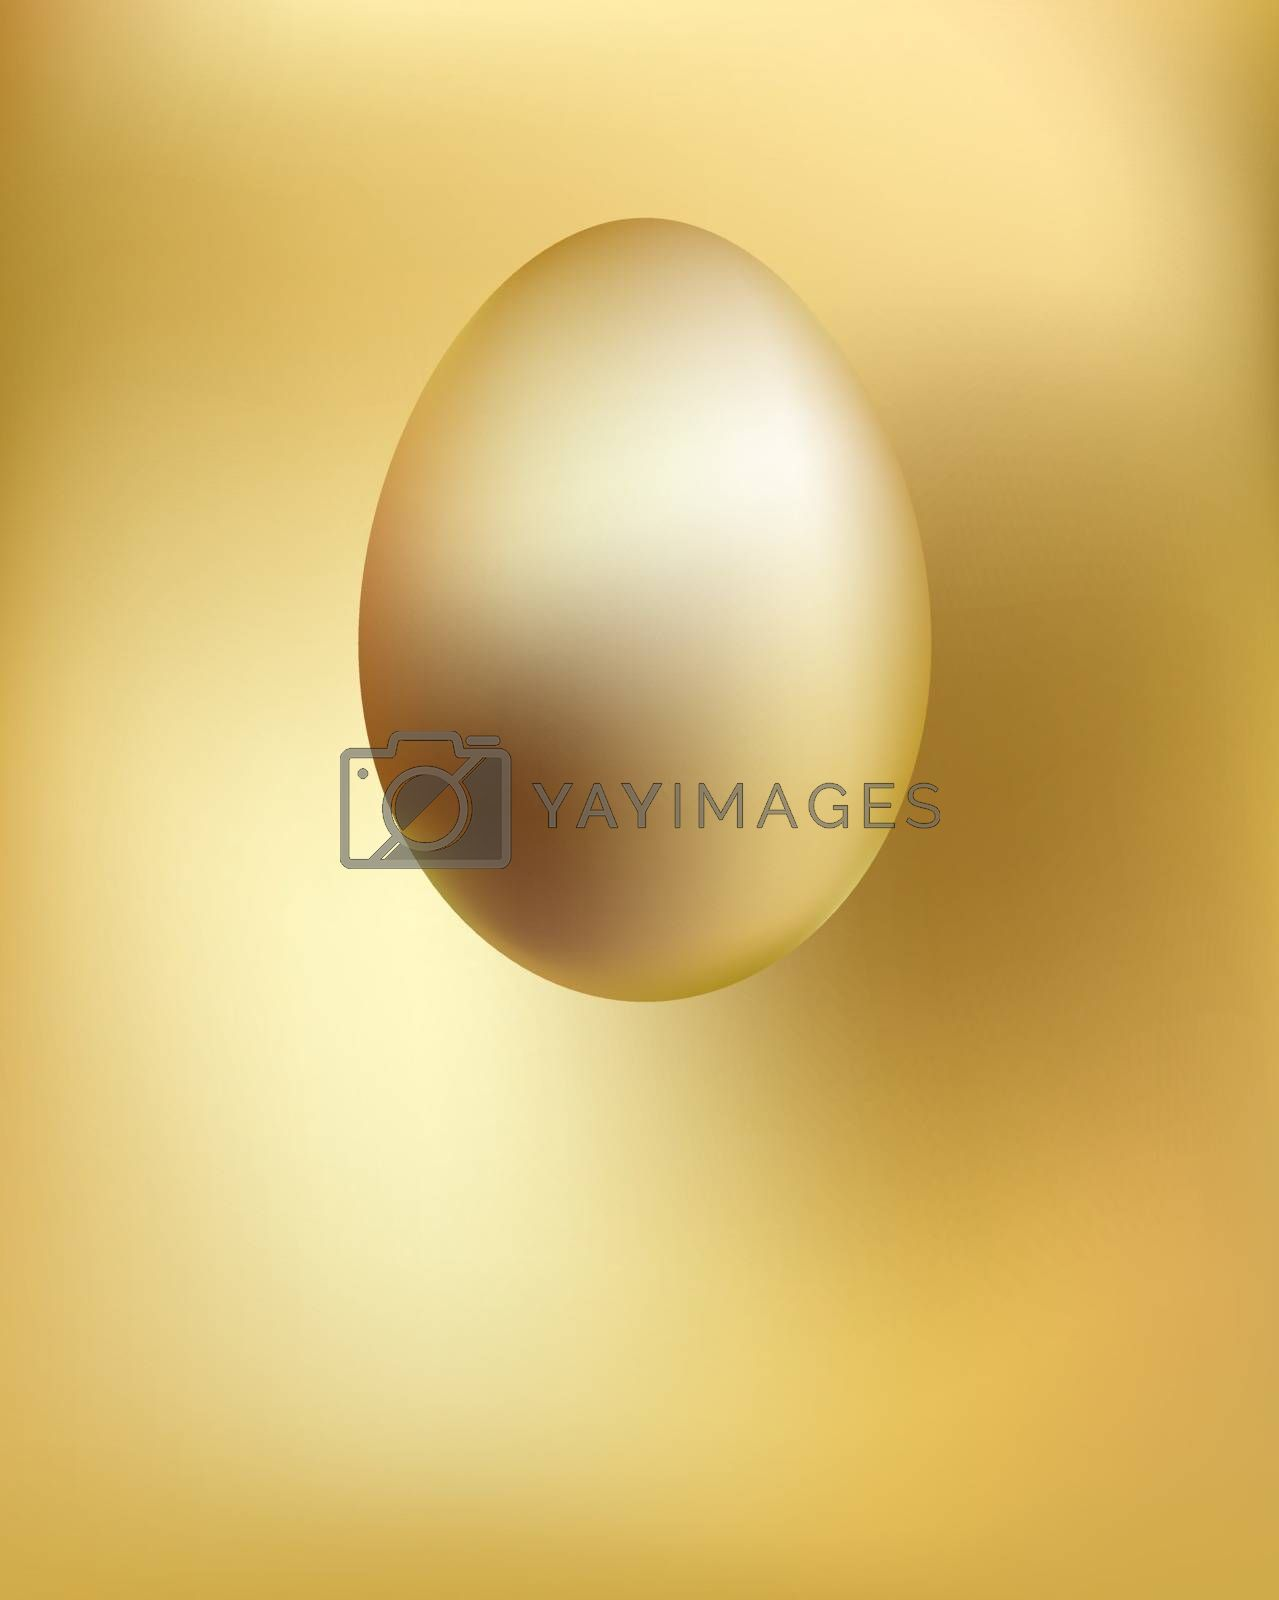 Golden egg soars hanging in space. Antigravity effect. Easter symbol. Spring traditional holidays.